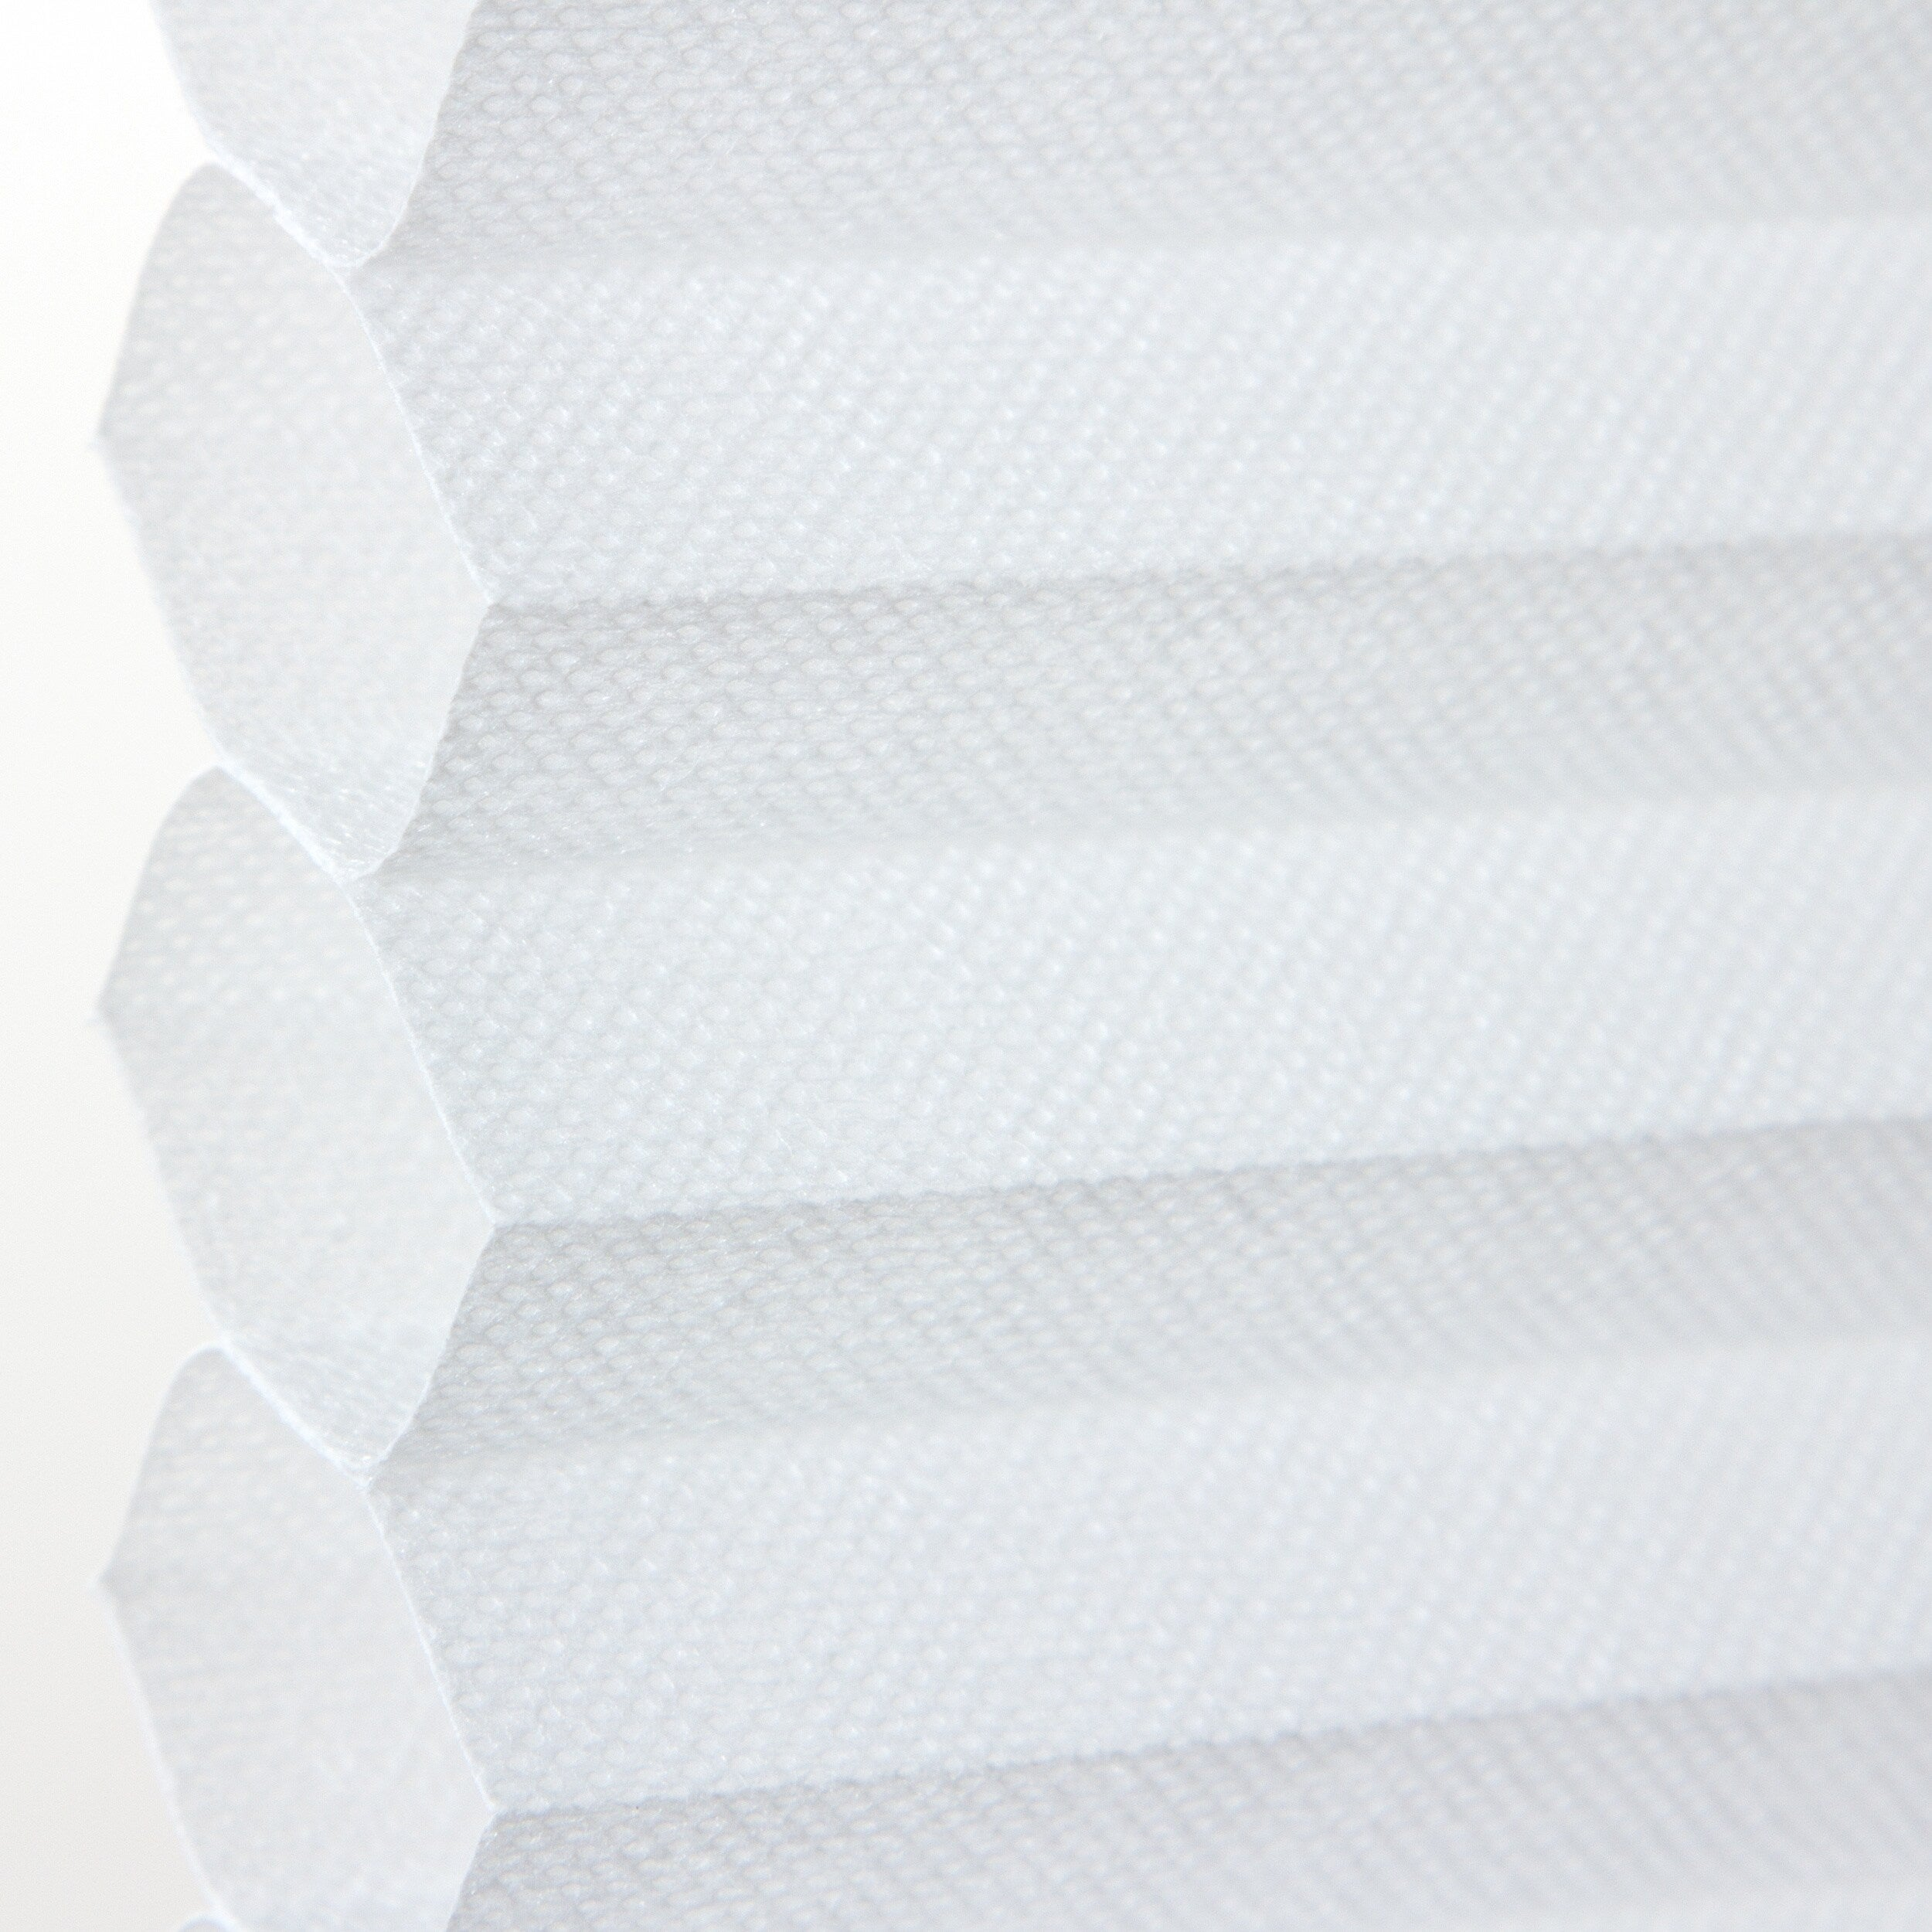 Arlo Blinds Pure White Light Filtering Cordless Cellular Shades On Sale Overstock 5903337